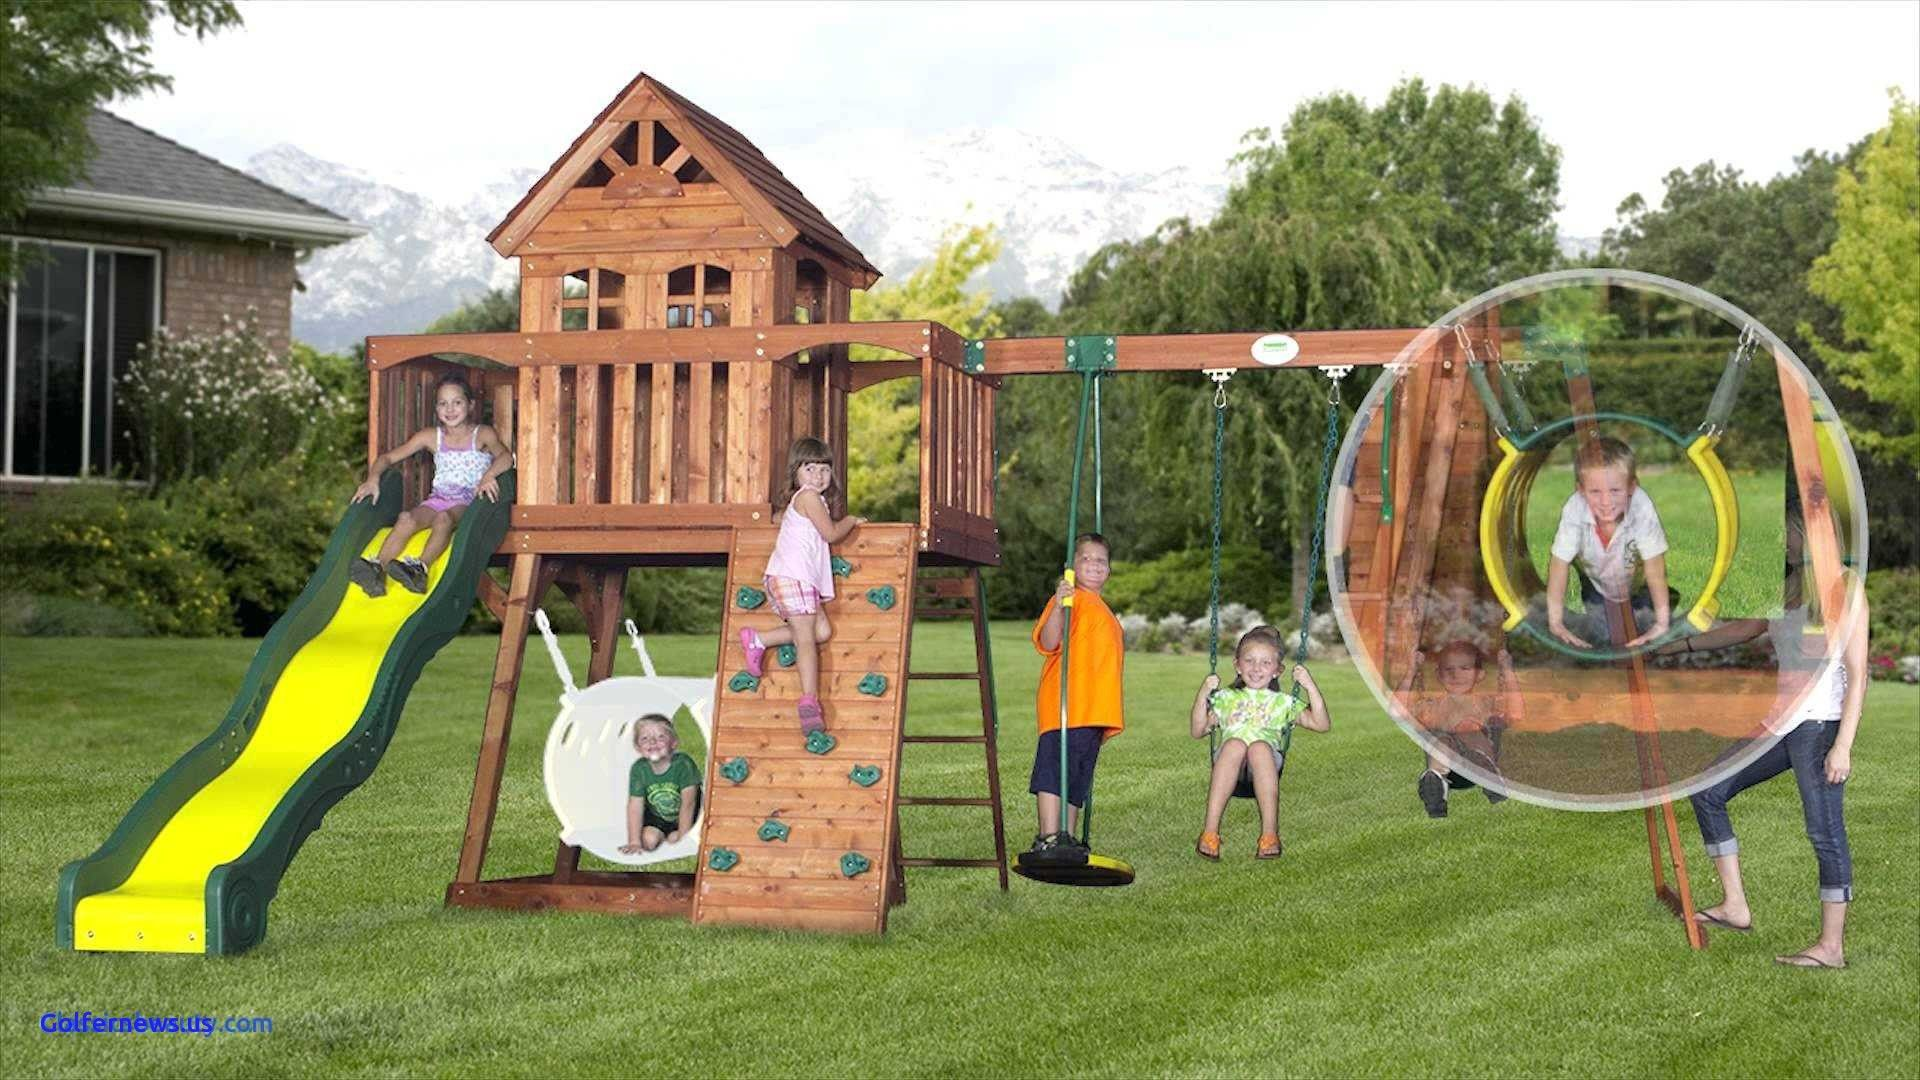 Backyard Playground Sets Backyard Playground Equipment Elegant Beautiful Playground Sets For In 2020 Backyard Playground Sets Backyard Playground Playground Set